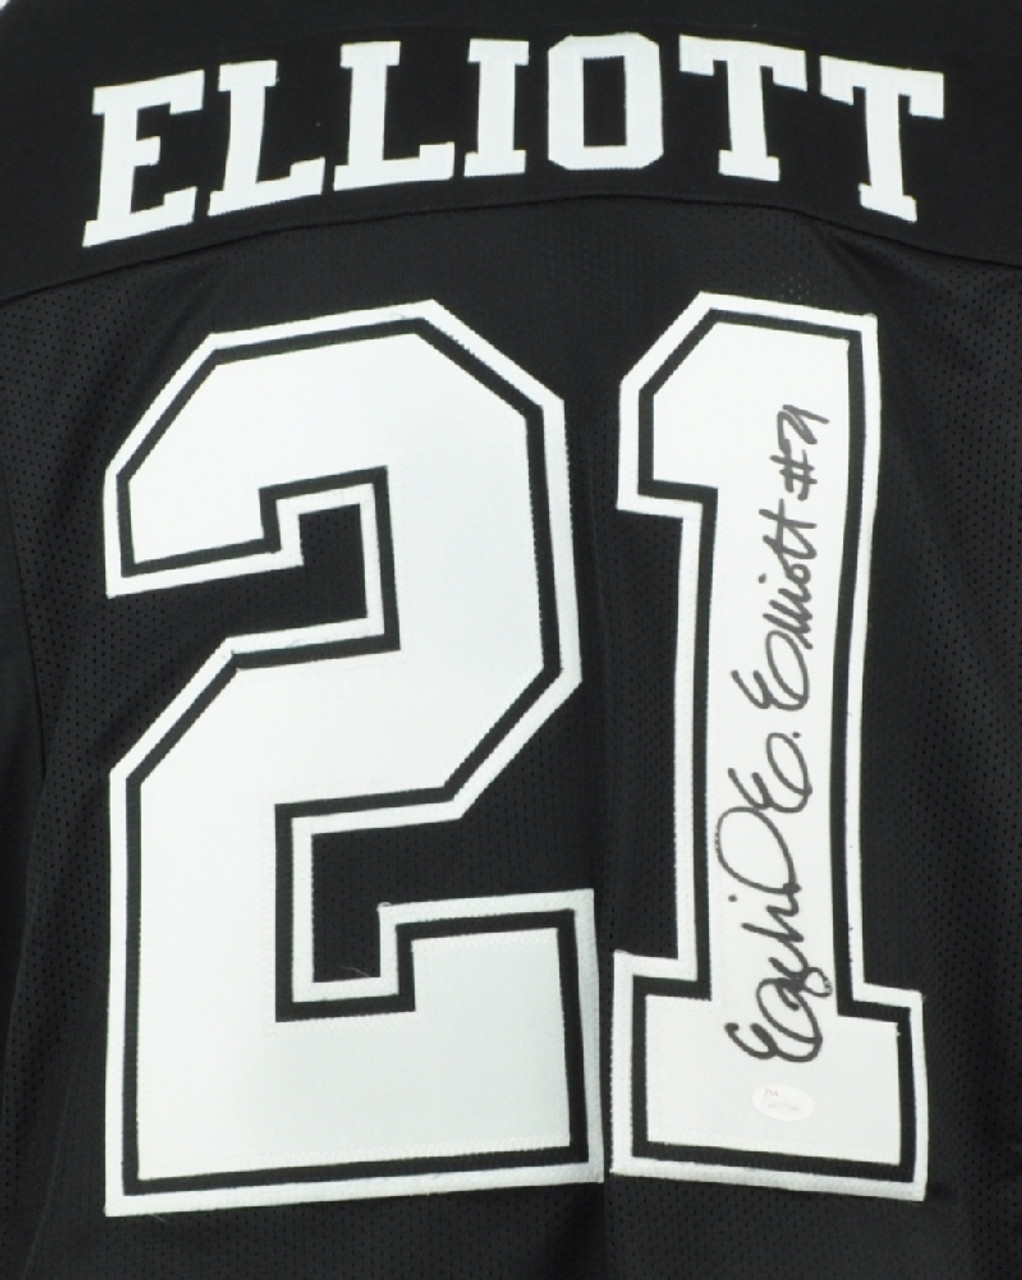 online retailer 38eb5 35686 NFL Dallas Cowboys Running Back Ezekiel Elliott 21 Signed Autographed XL  Black Replica Jersey JSA Mens